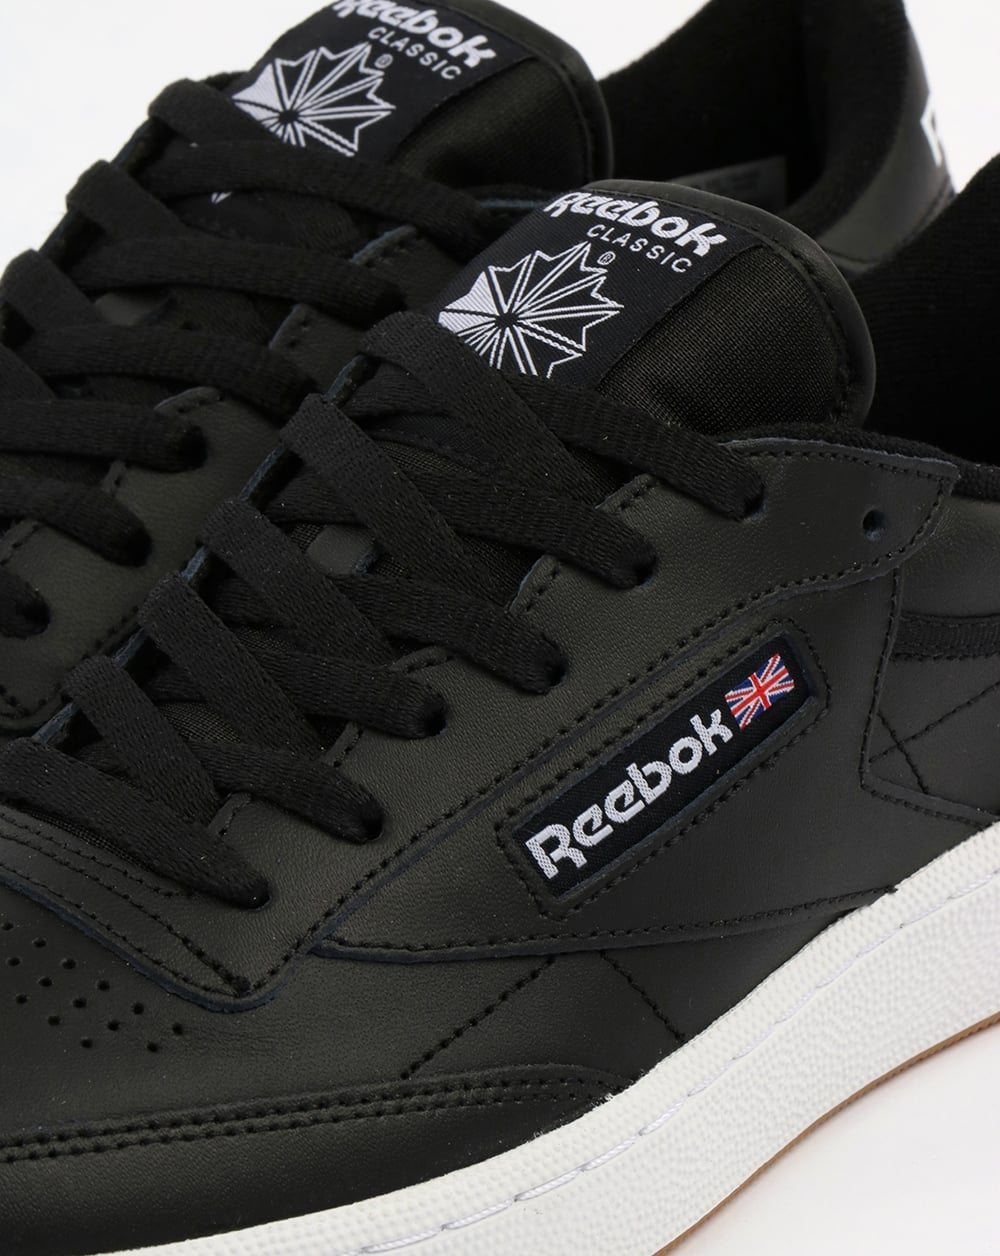 110616a0a1f Reebok Club C 85 Trainers Black White